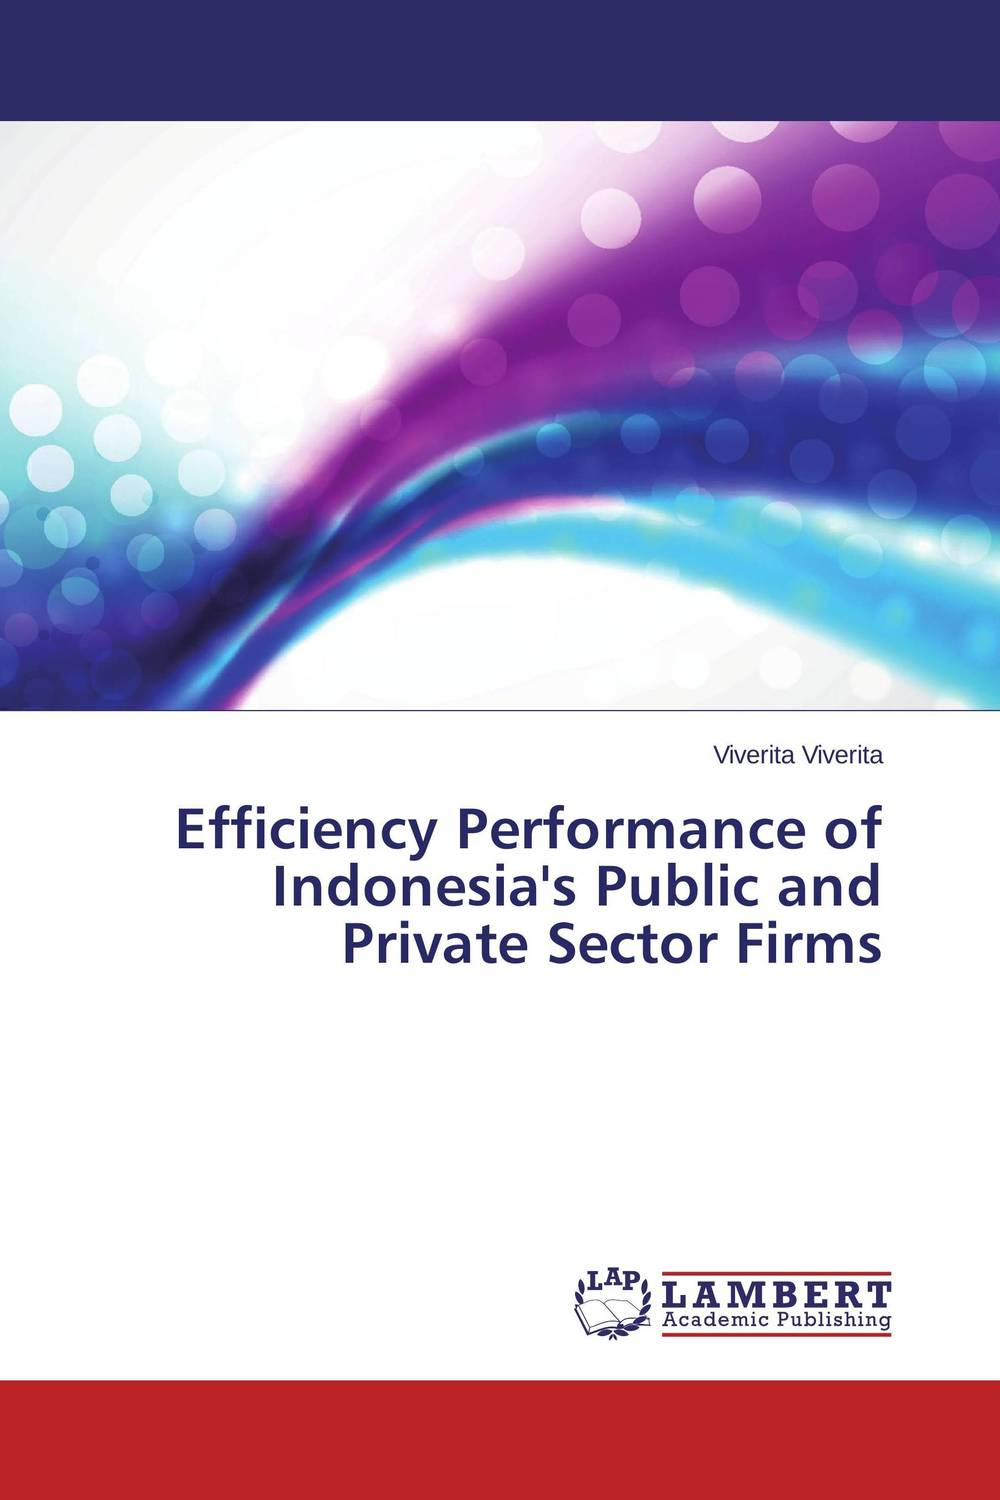 купить Efficiency Performance of Indonesia's Public and Private Sector Firms недорого